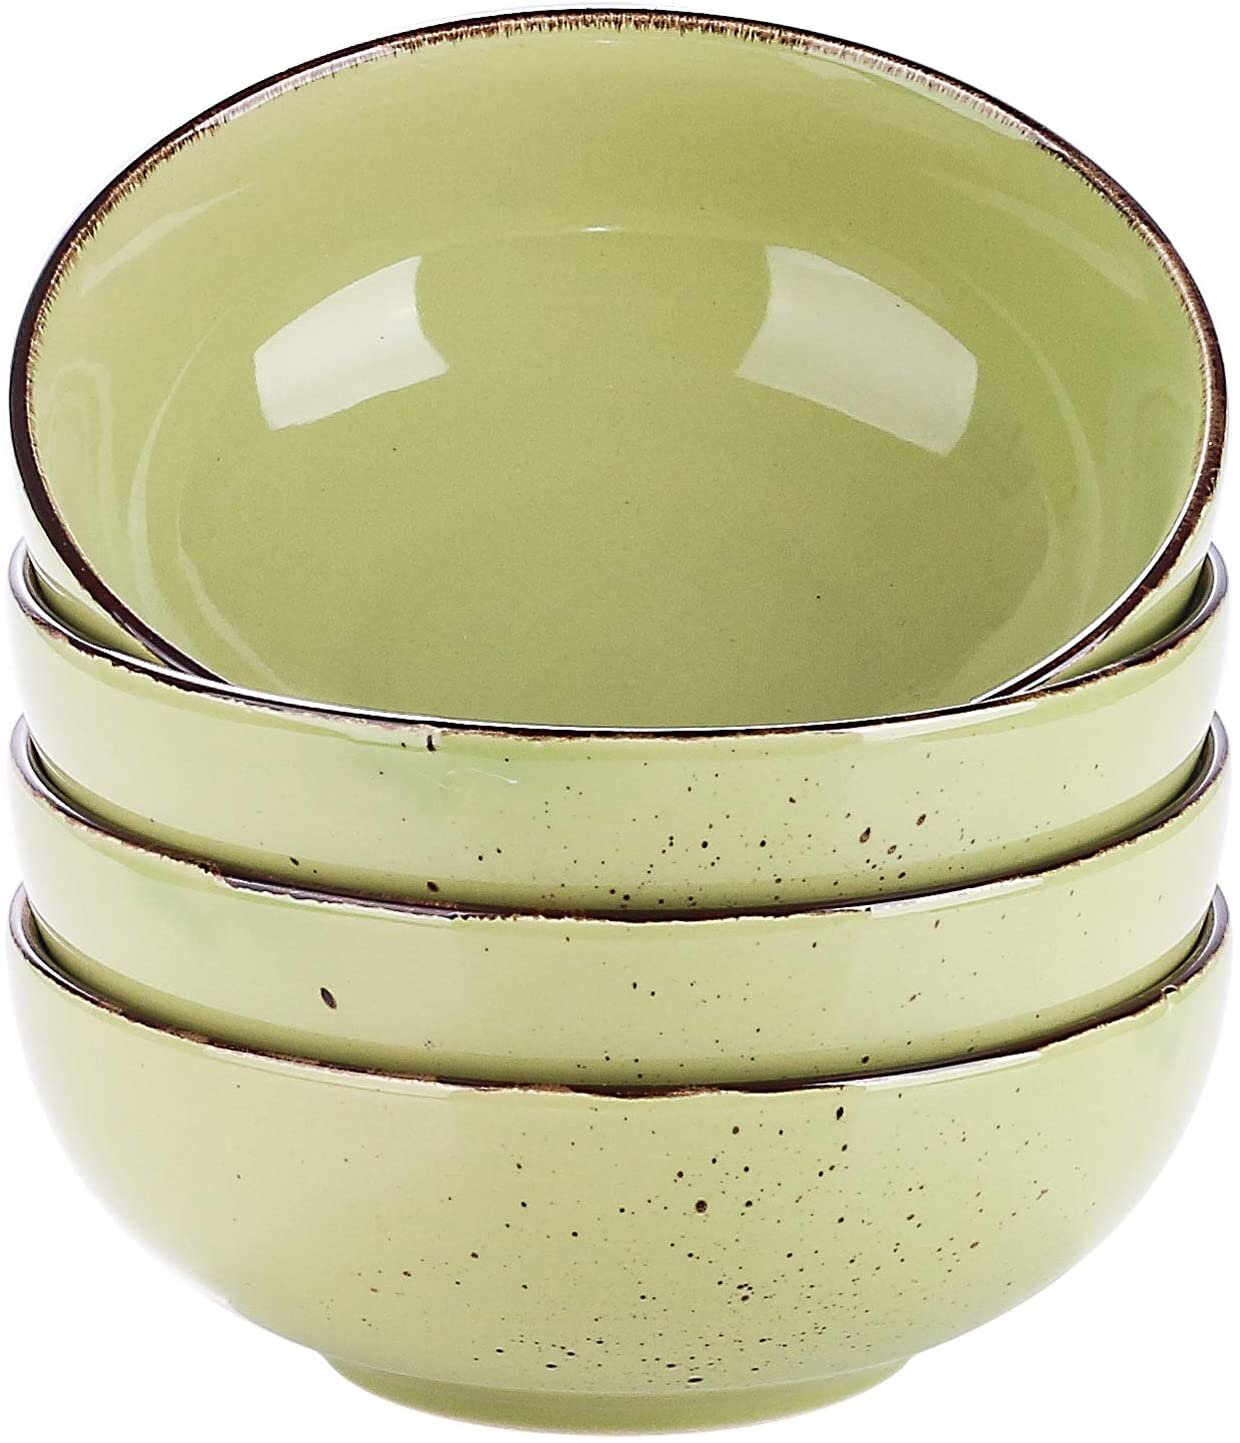 Gracie Oaks Gascoyne 27 Oz Cereal Bowl Wayfair